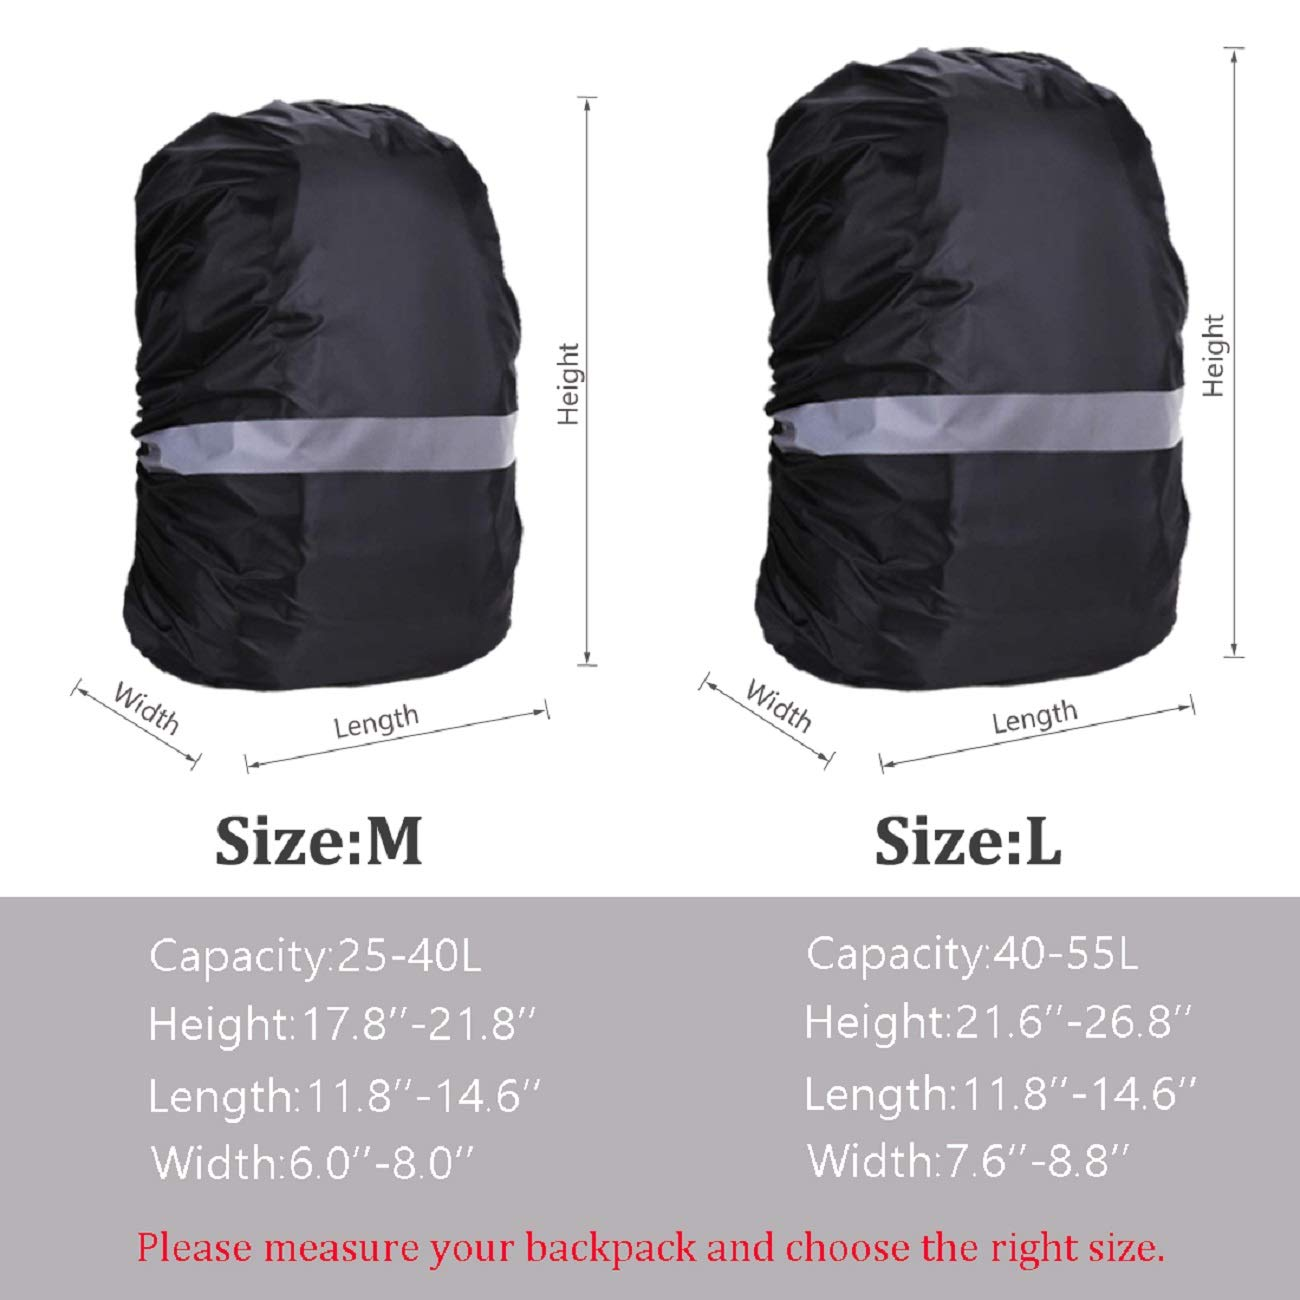 DLOONGS Waterproof Backpack Rain Cover/Portable Snow Defence Cover Ultralight Shoulder Protect Outdoor Tools with Anti-Slip Buckles /& Strengthened Layer